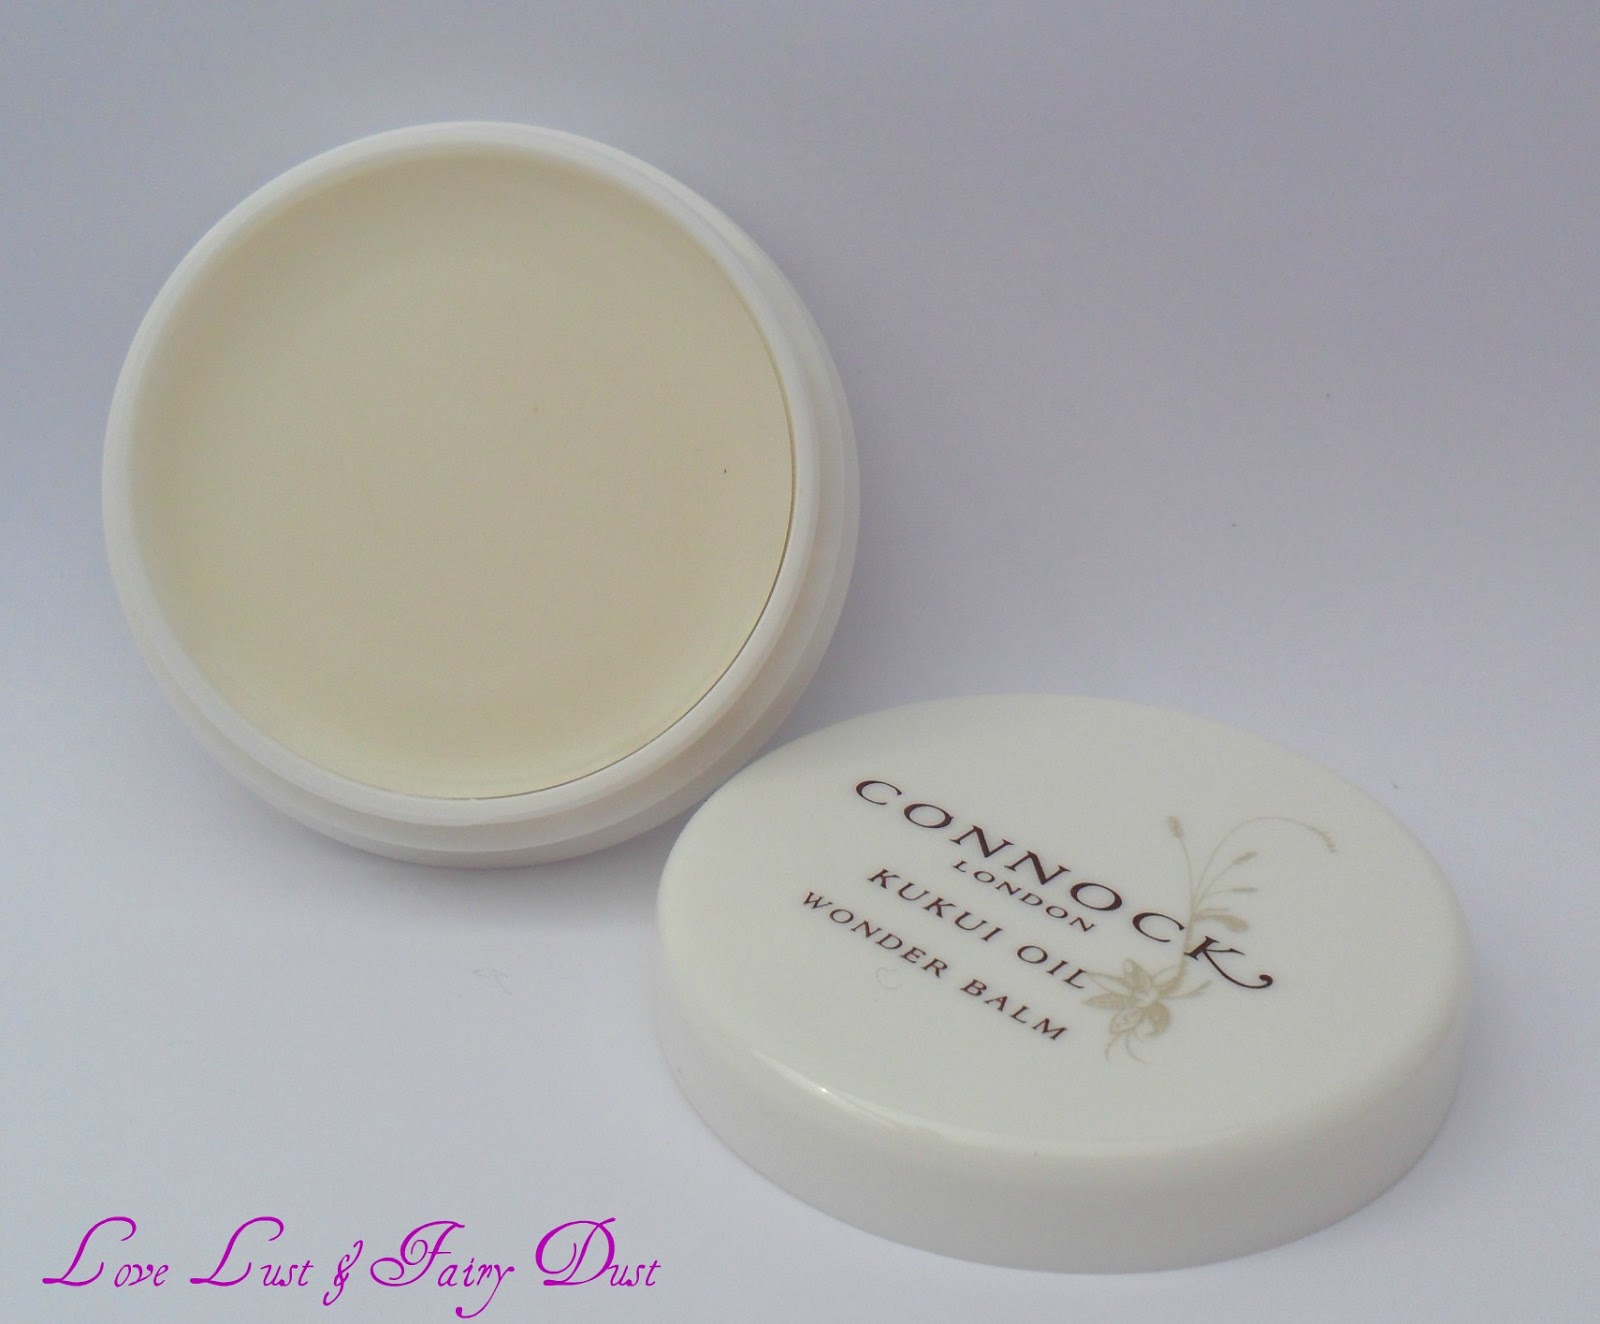 Connock London Wonder Balm